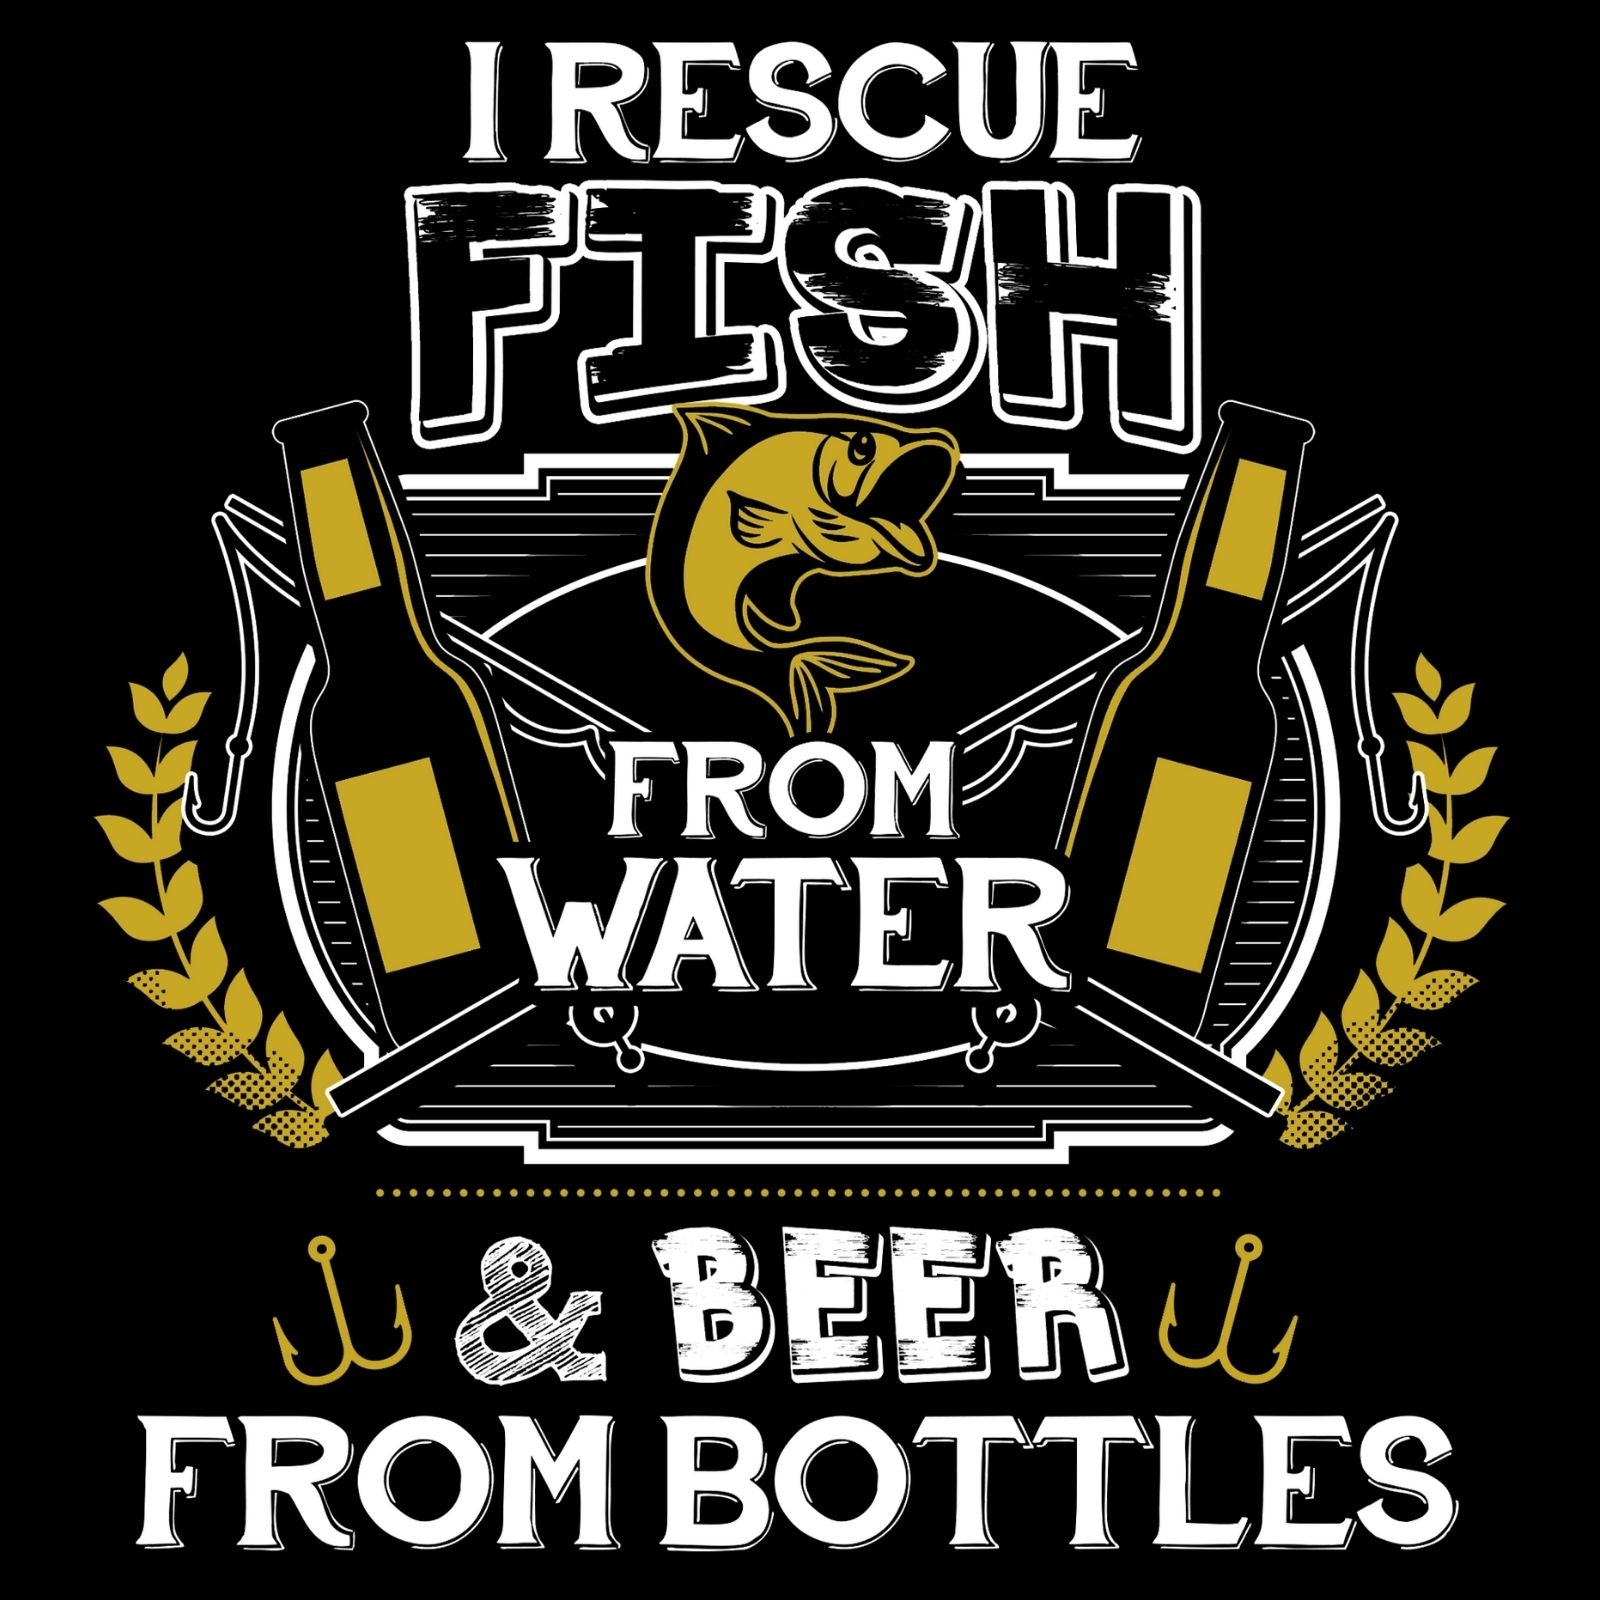 I Rescue Fish From Water And Beer From Bottles - Bastard Graphics